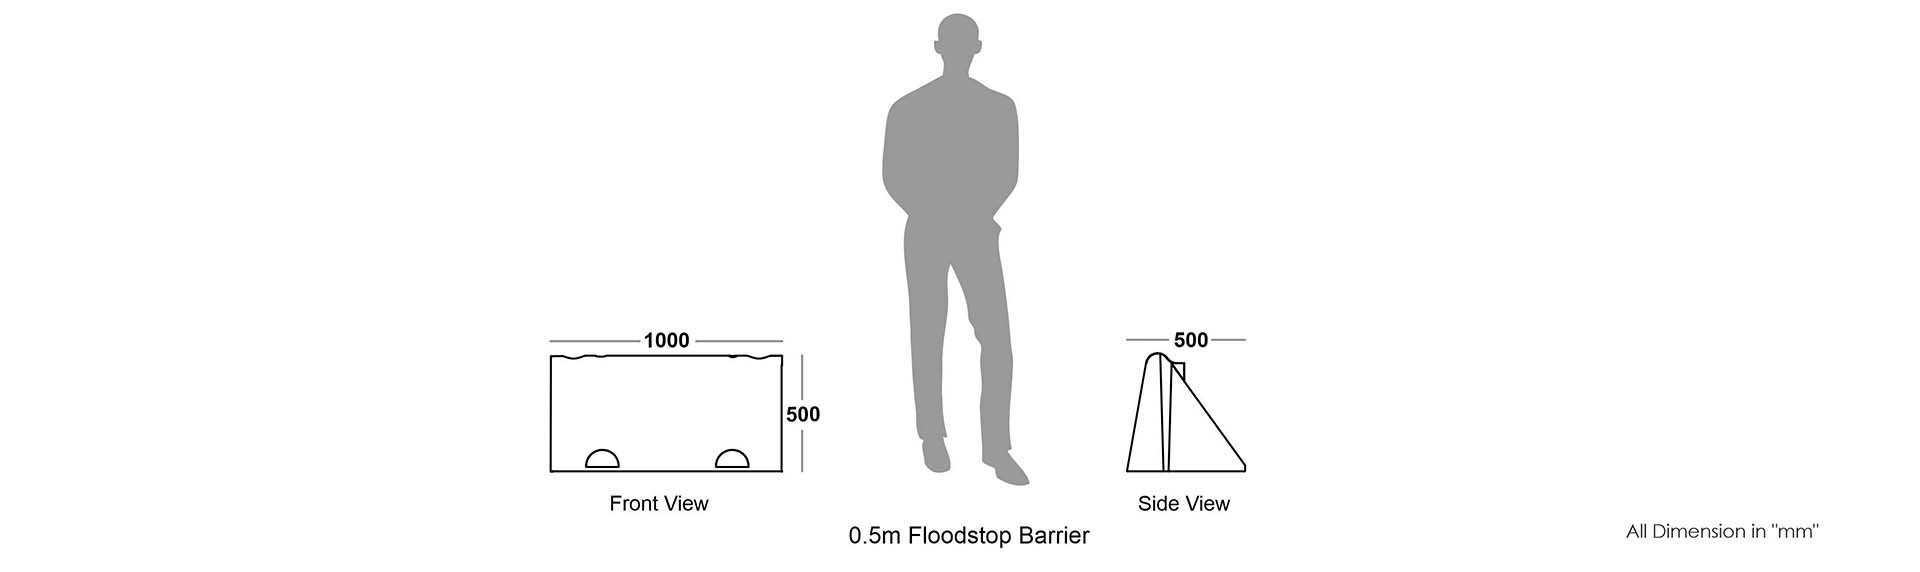 0.5m and 0.9m Floodstop Barrier DWG